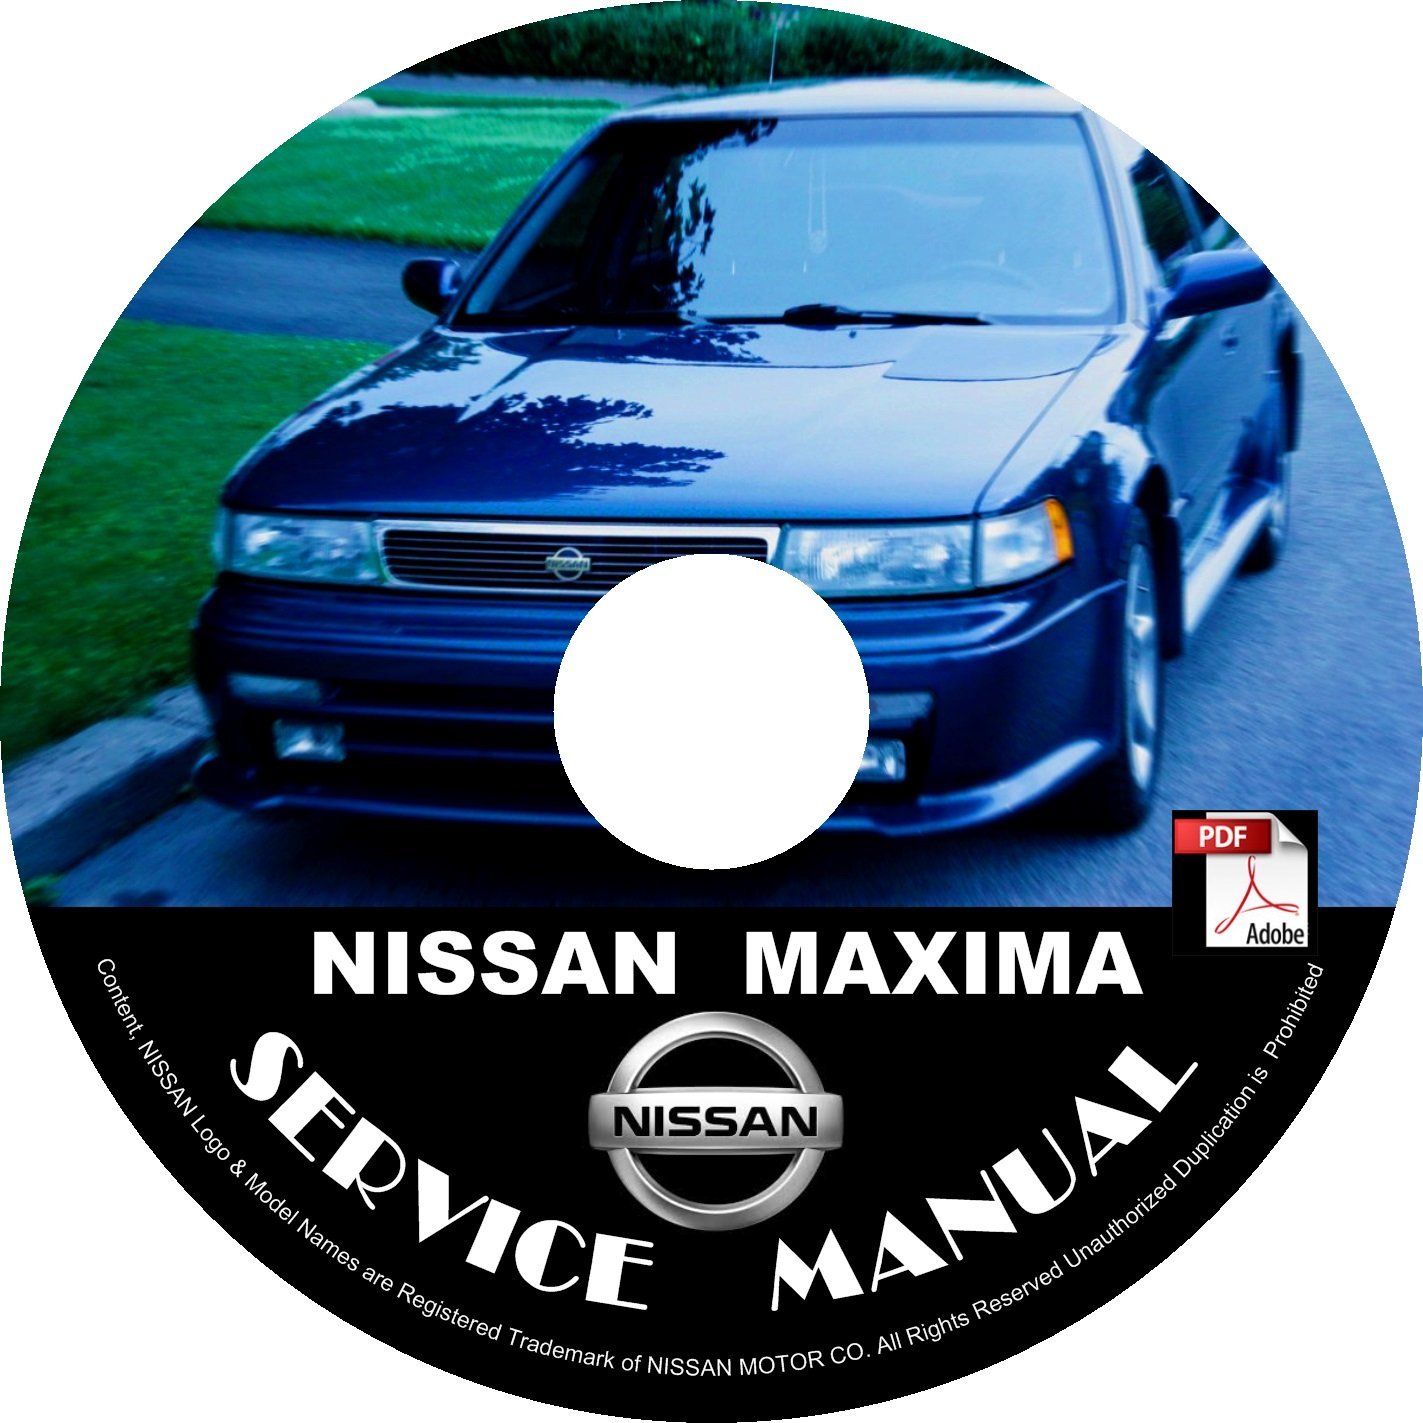 1991 Nissan Maxima Service Repair Shop Manual on CD Fix Repair Rebuild '91 Workshop Guide